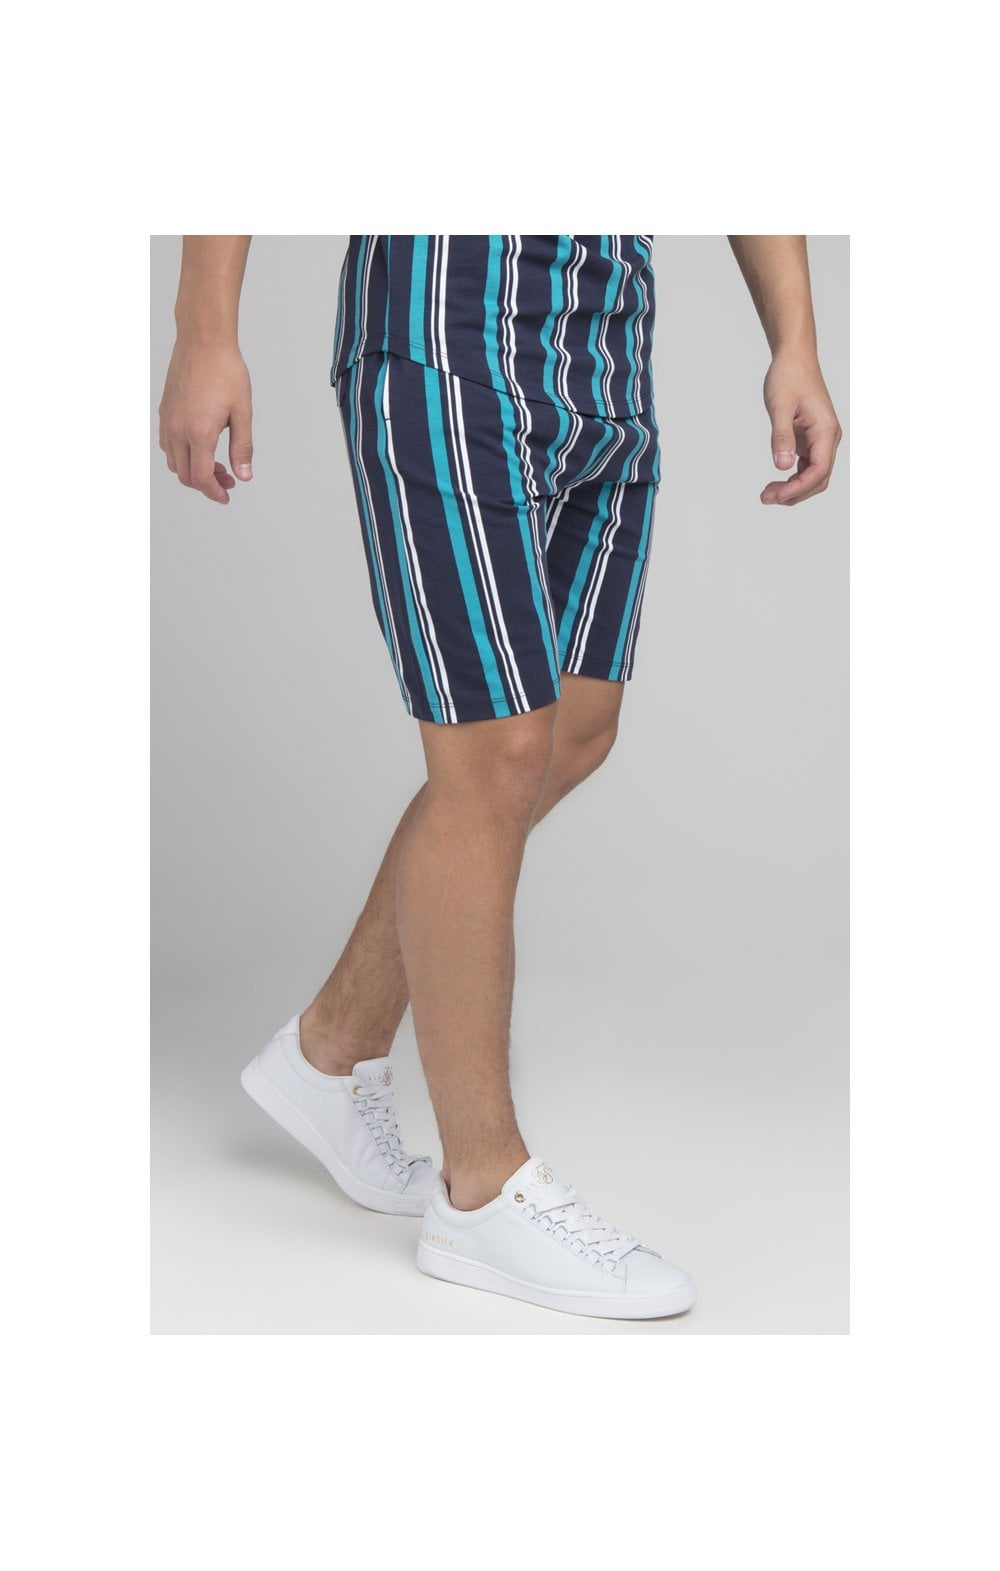 Load image into Gallery viewer, Illusive London Stripe Shorts - Navy & Teal (1)